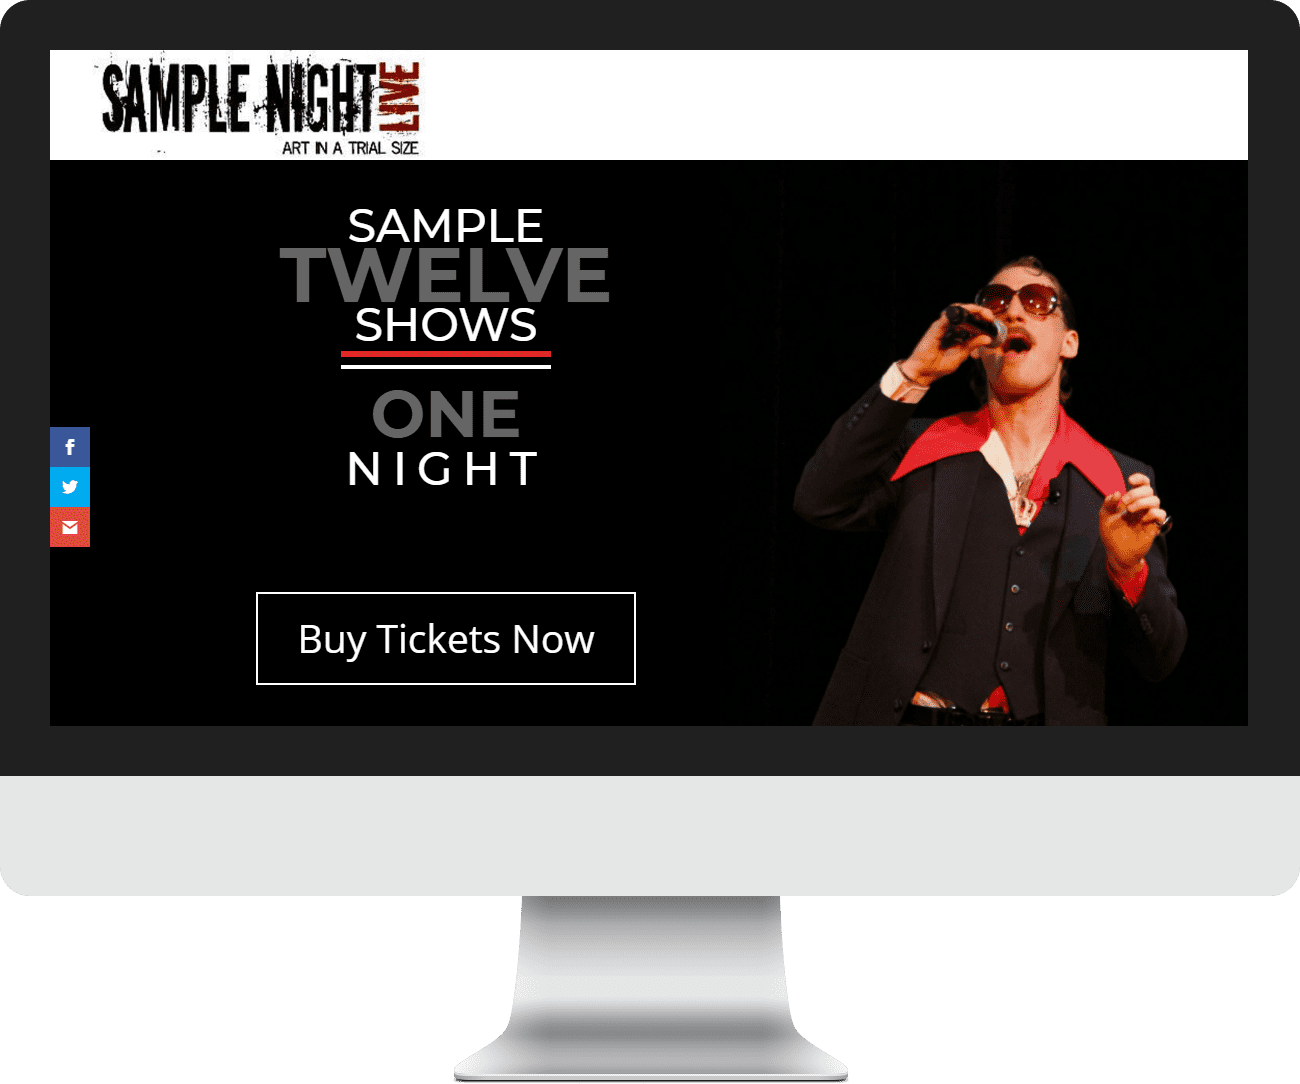 Sample Night Live 1